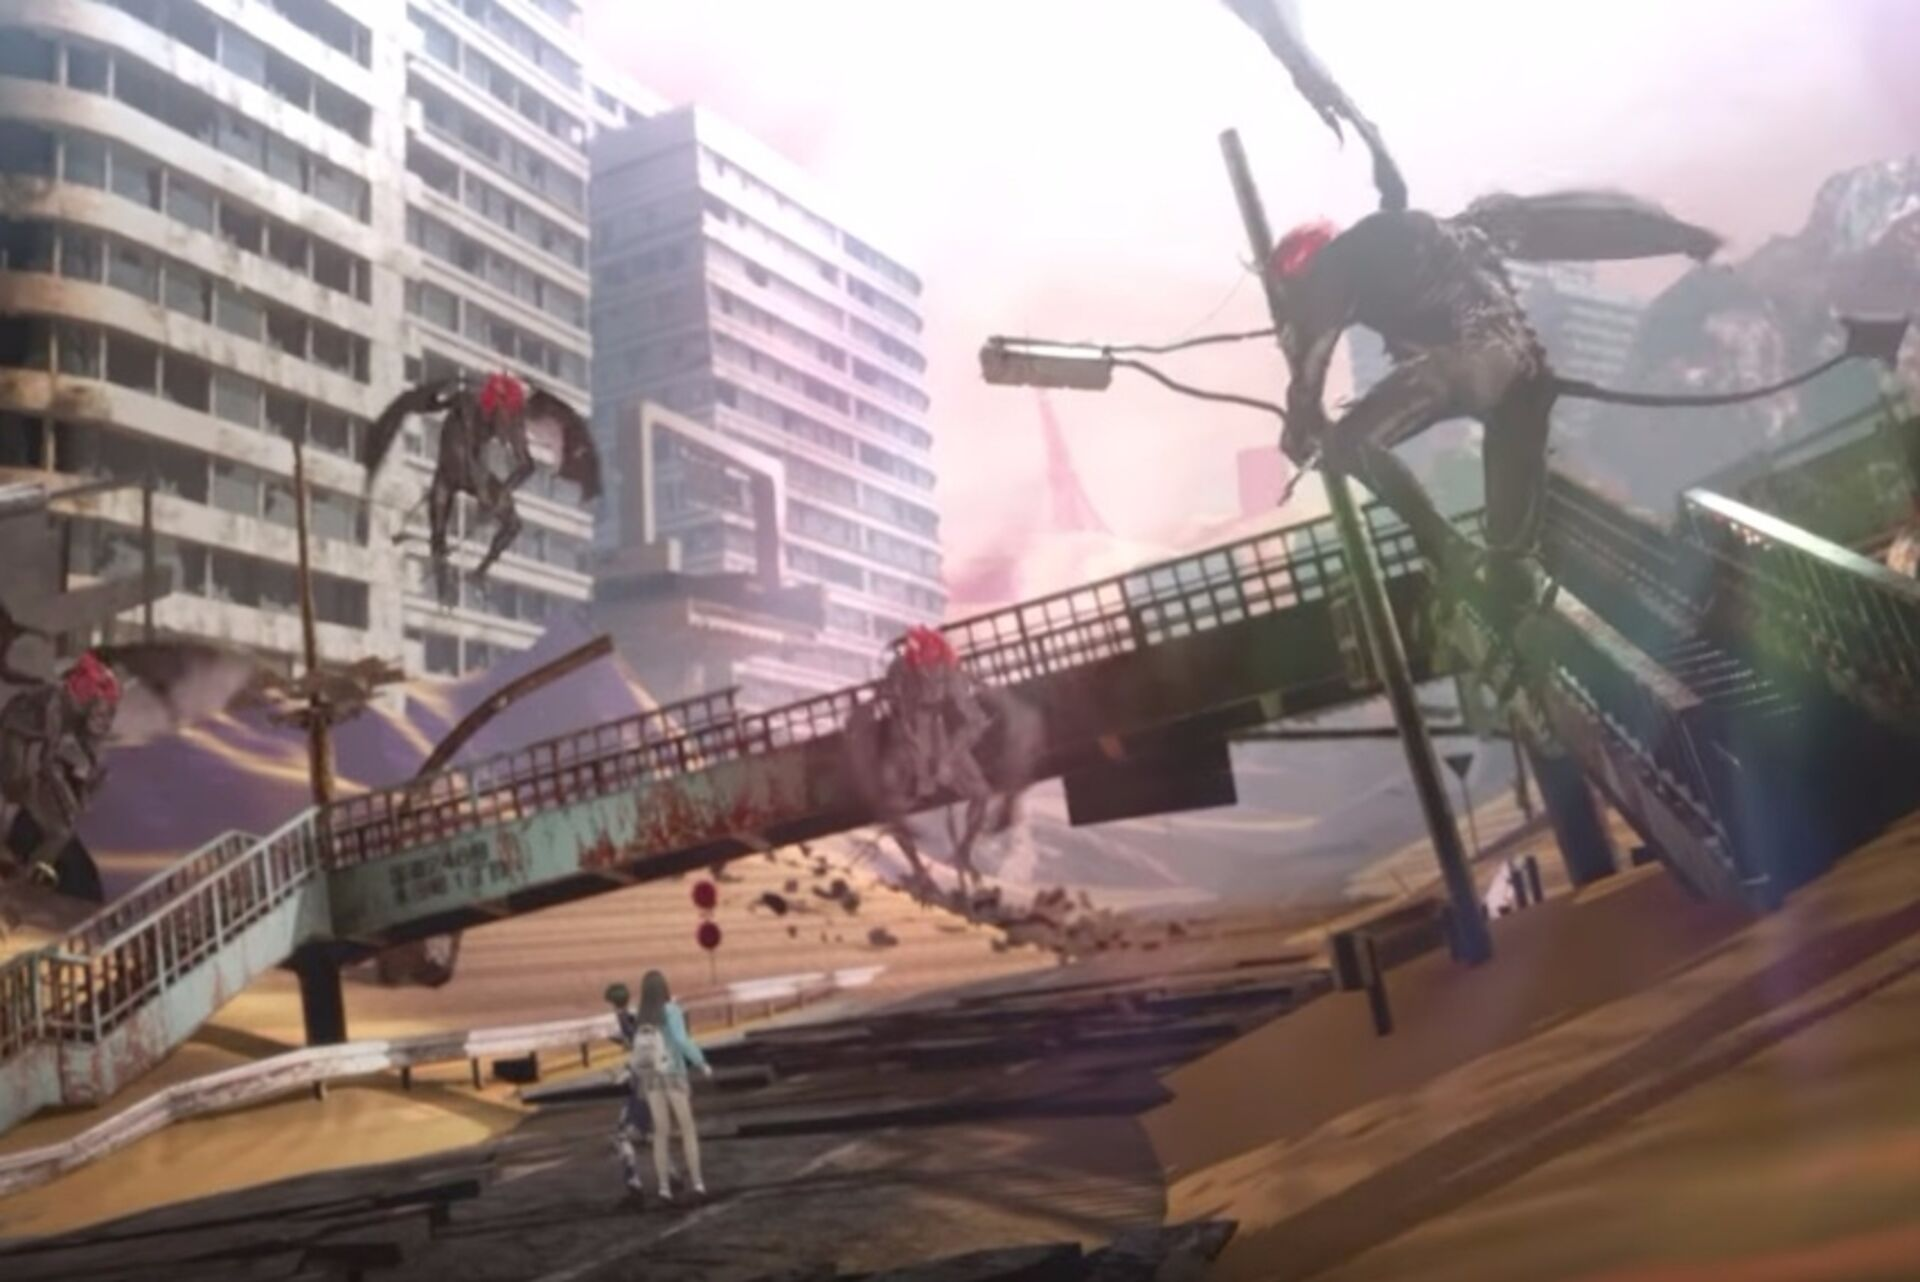 Atlus confirms Shin Megami Tensei 5 is coming to Switch in